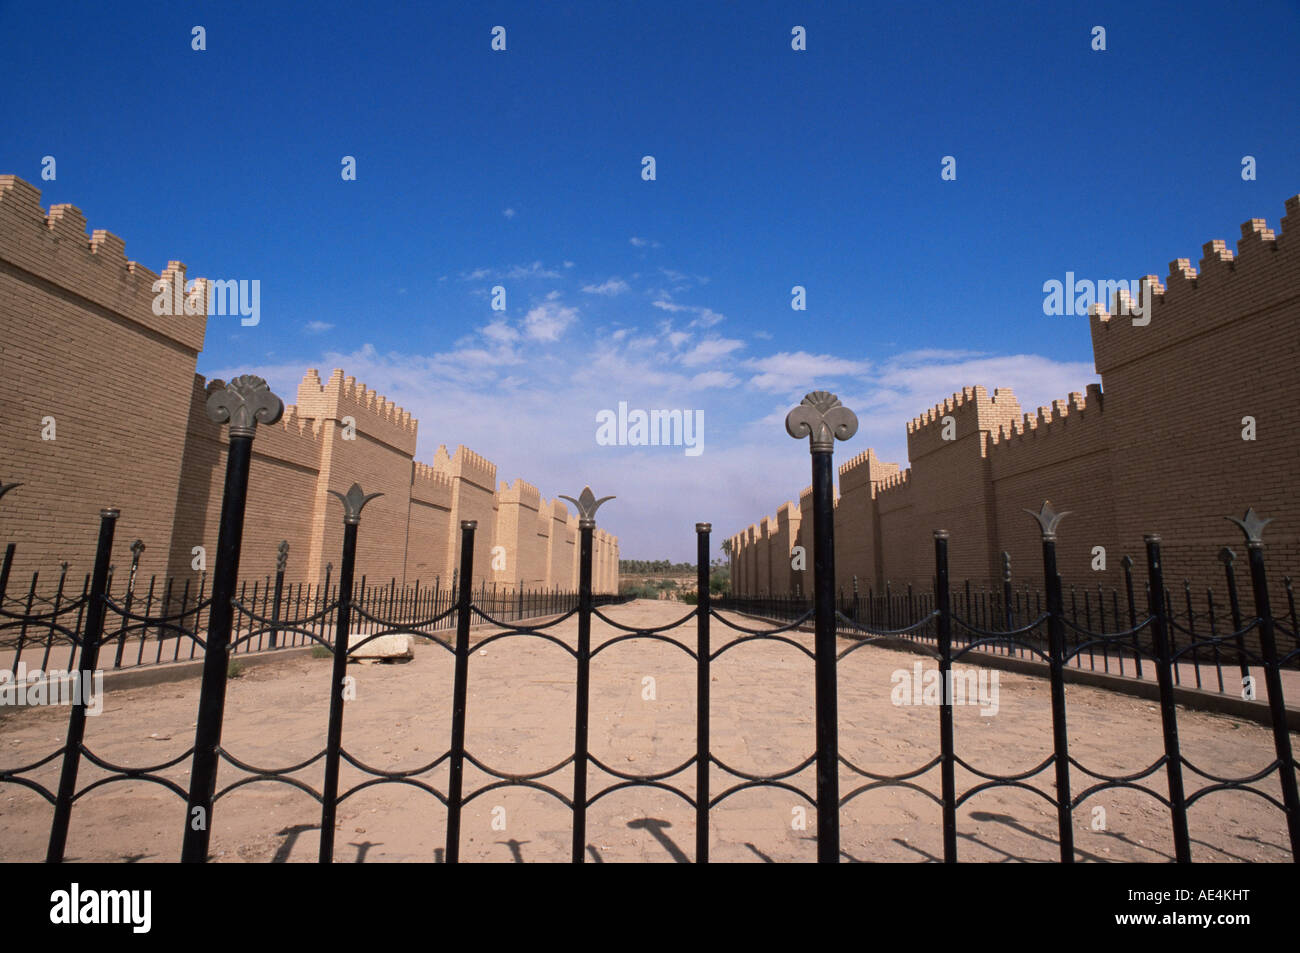 Processional street, Babylon, Iraq, Middle East Stock Photo